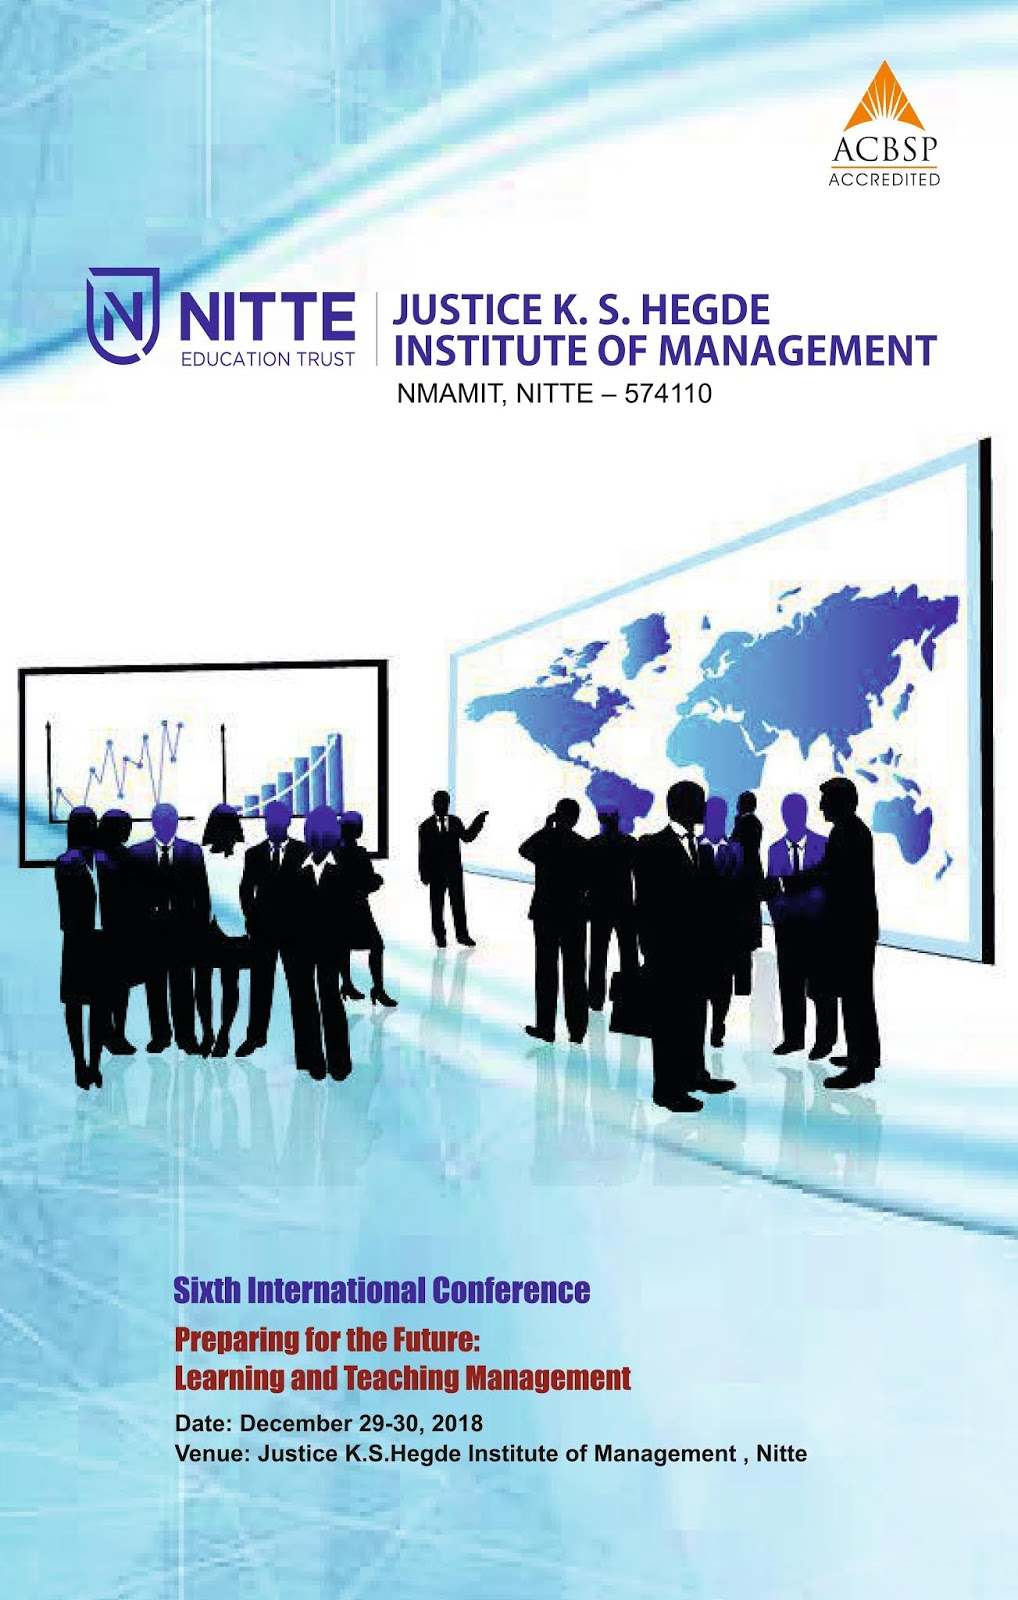 6th International Conference On Preparing For The Future Learning And Teaching Management